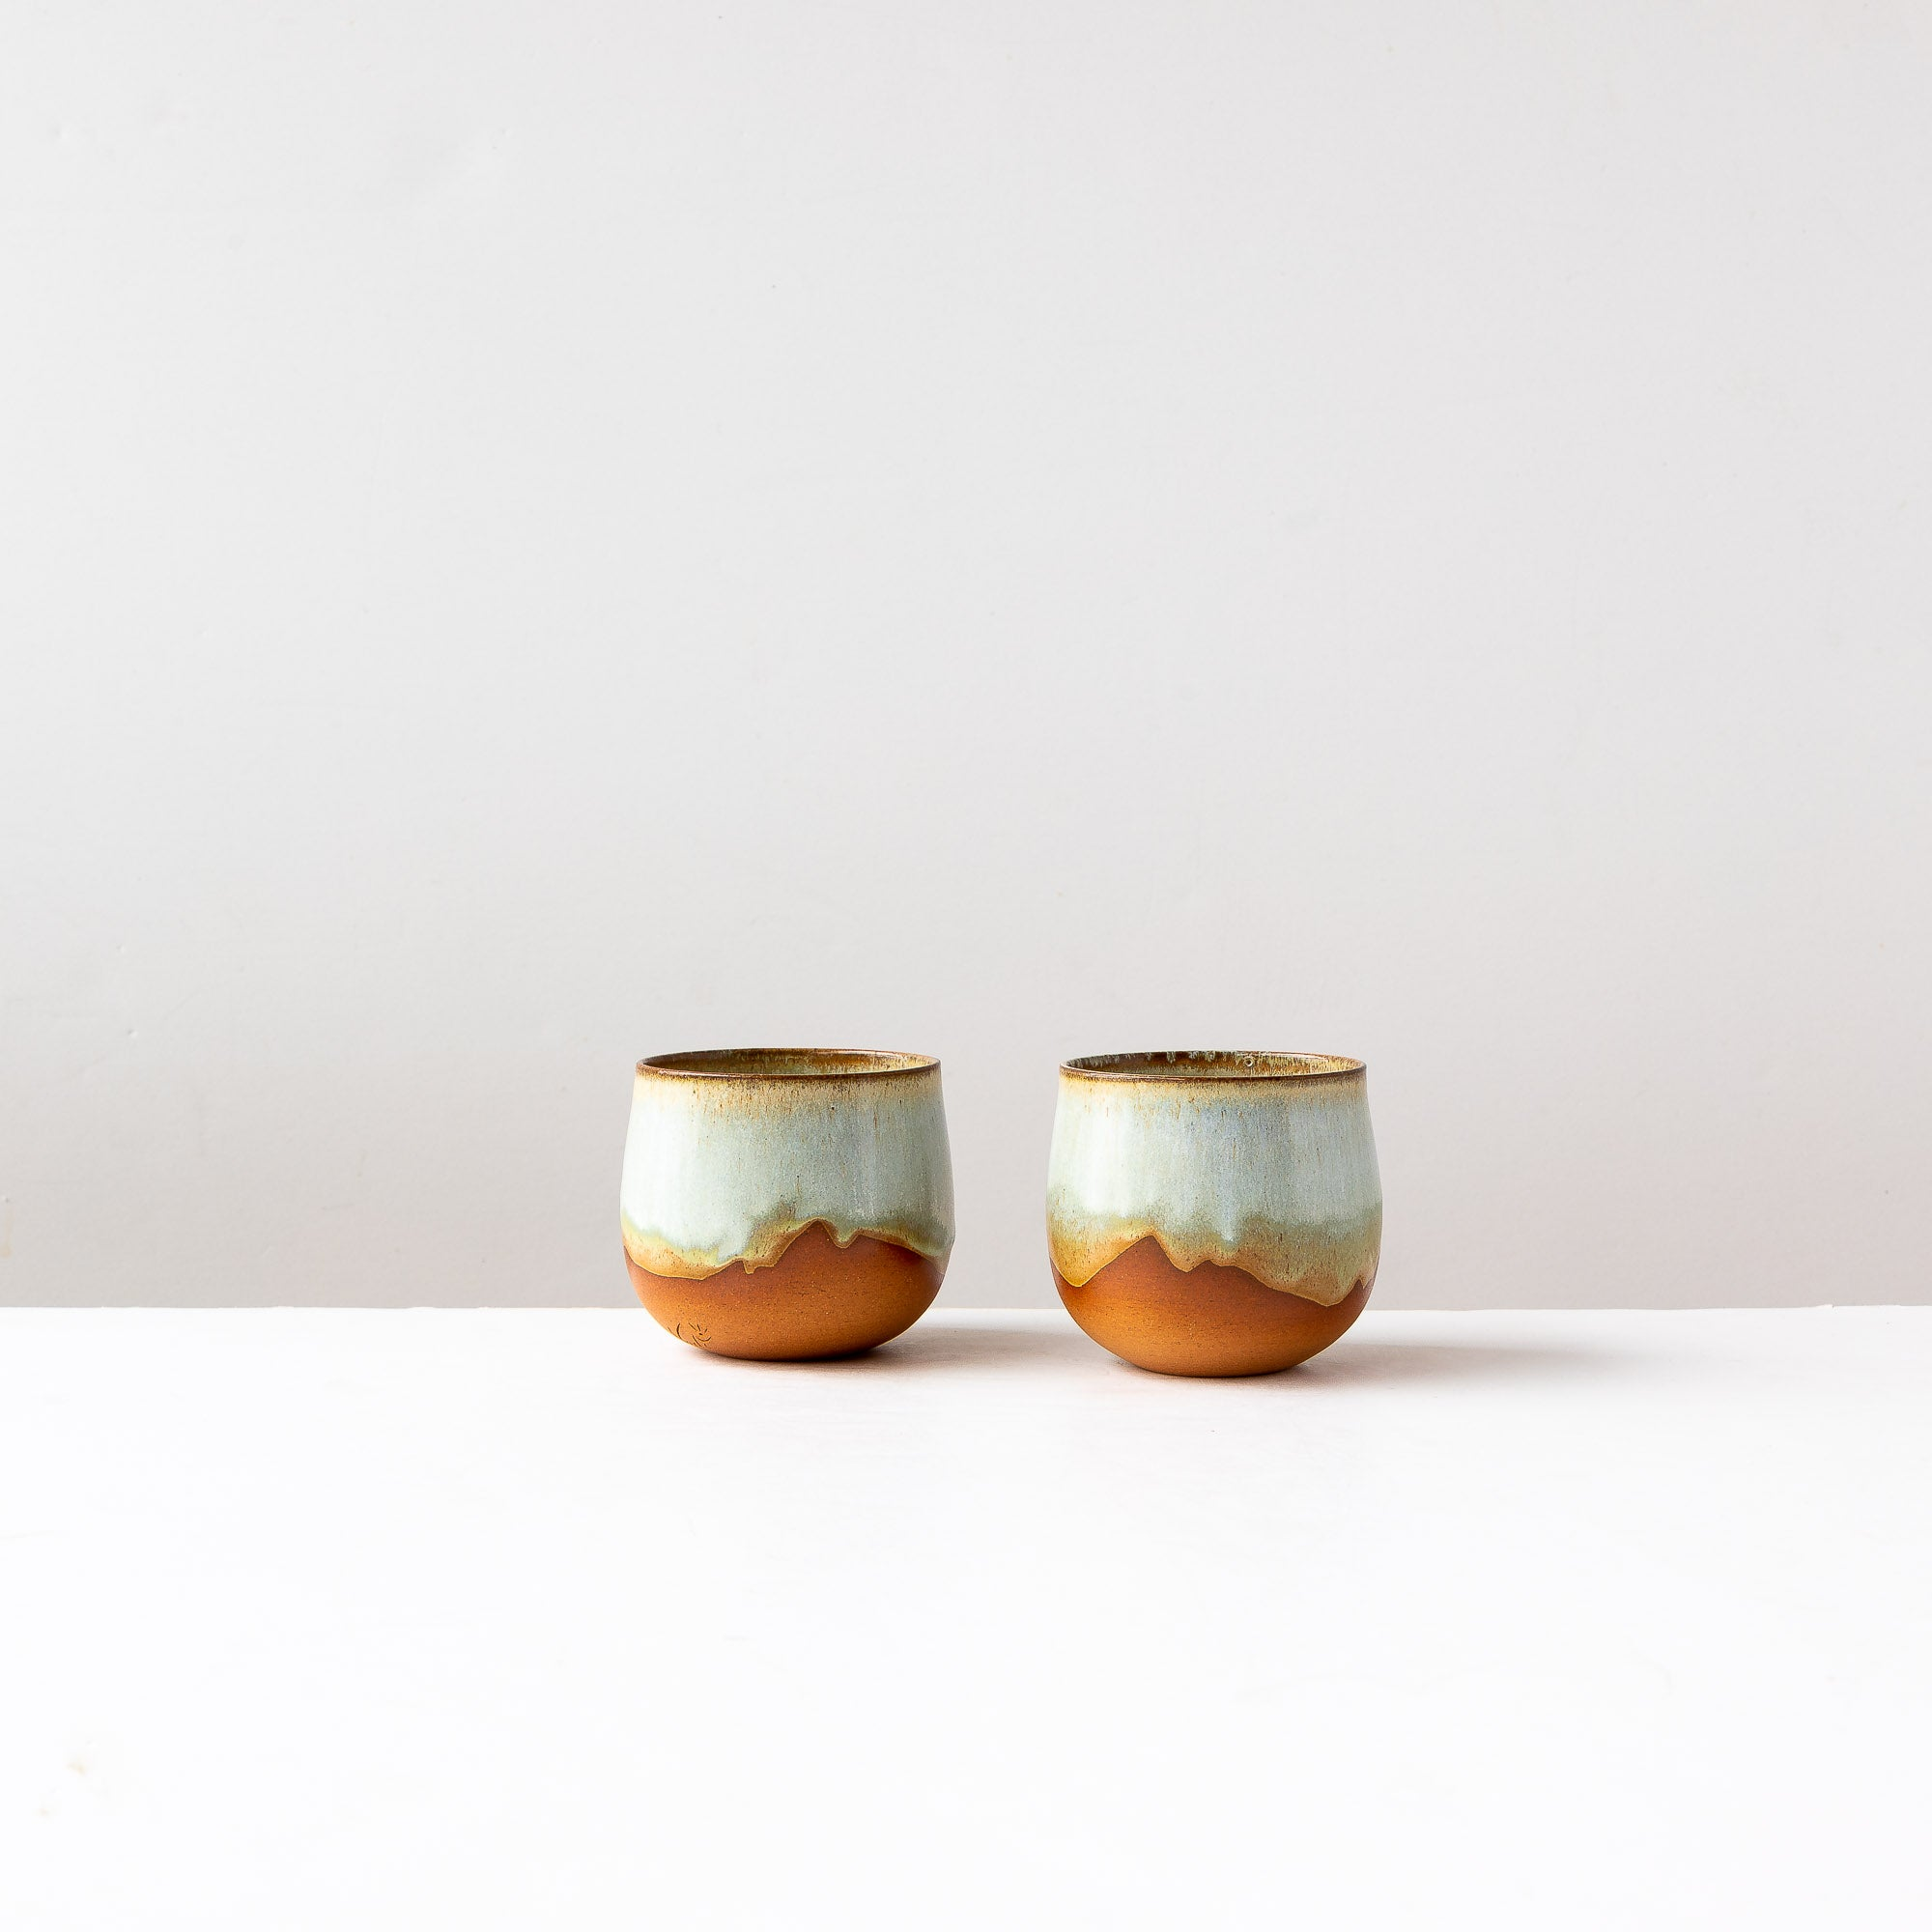 Two Handthrown Tea Bowls in Red Stoneware & Turquoise Glaze - Sold by Chic & Basta